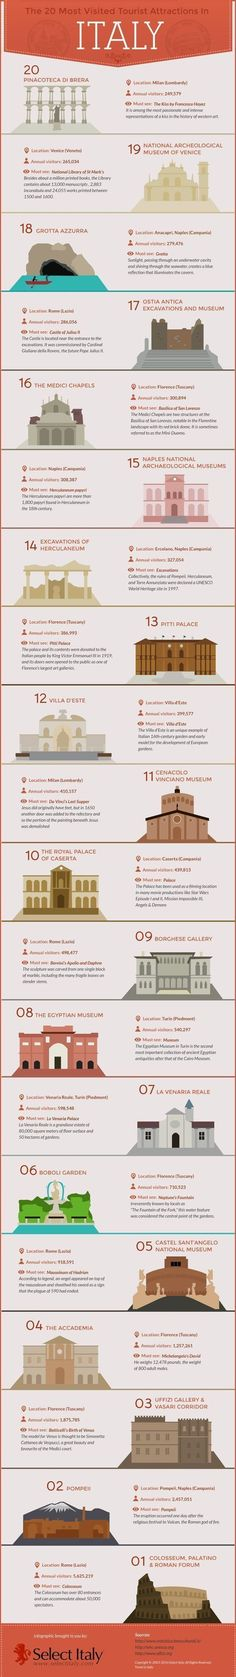 Popular Italian Attractions Infographic: Looking for popular Italian attractions? Italy is, without any doubt, one of the most desired travel destinations #italianinfographic